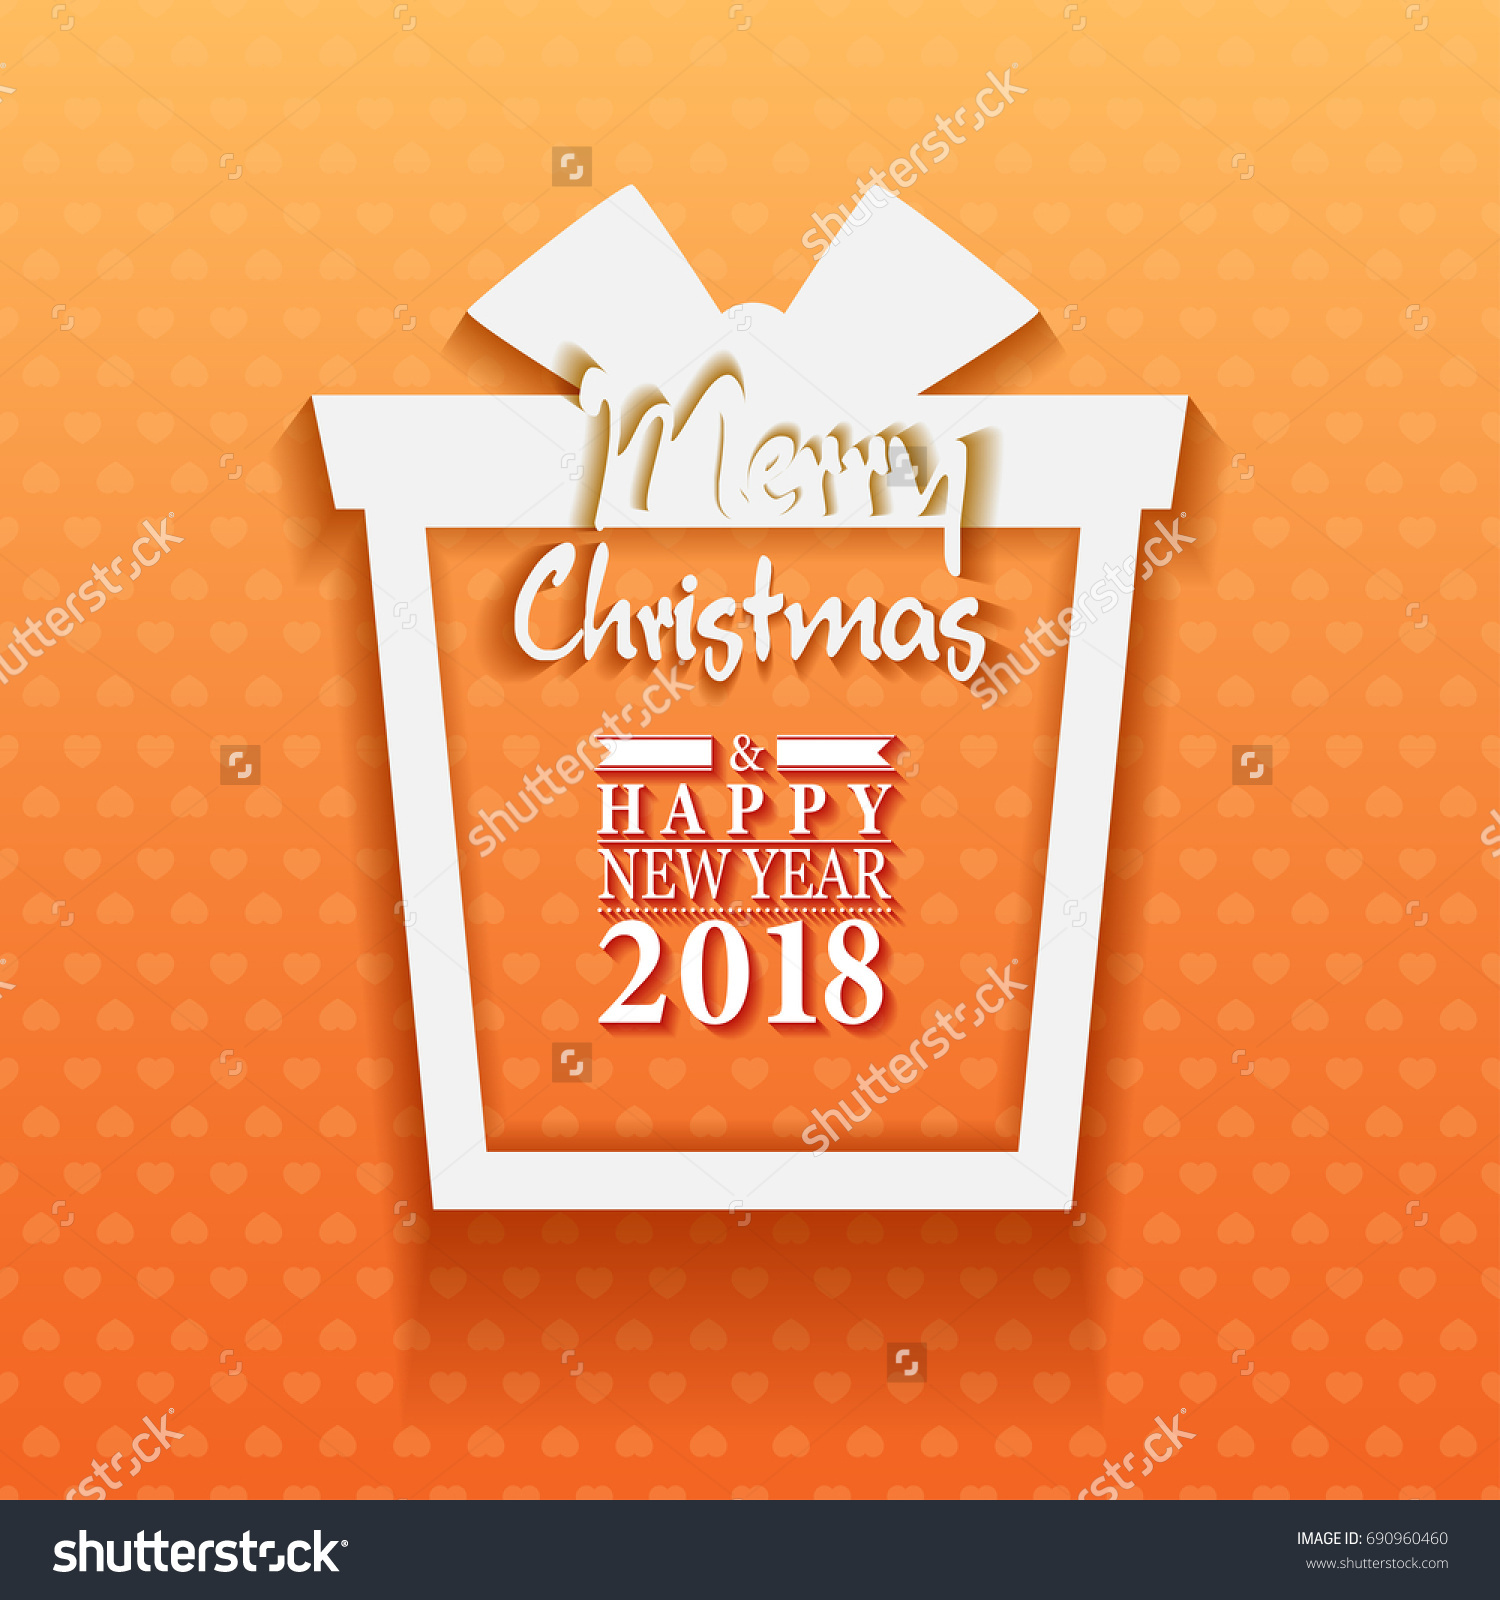 2018 happy new year merry christmas stock vector 2018 690960460 2018 happy new year and merry christmas gift greeting card and background with boxes with gifts m4hsunfo